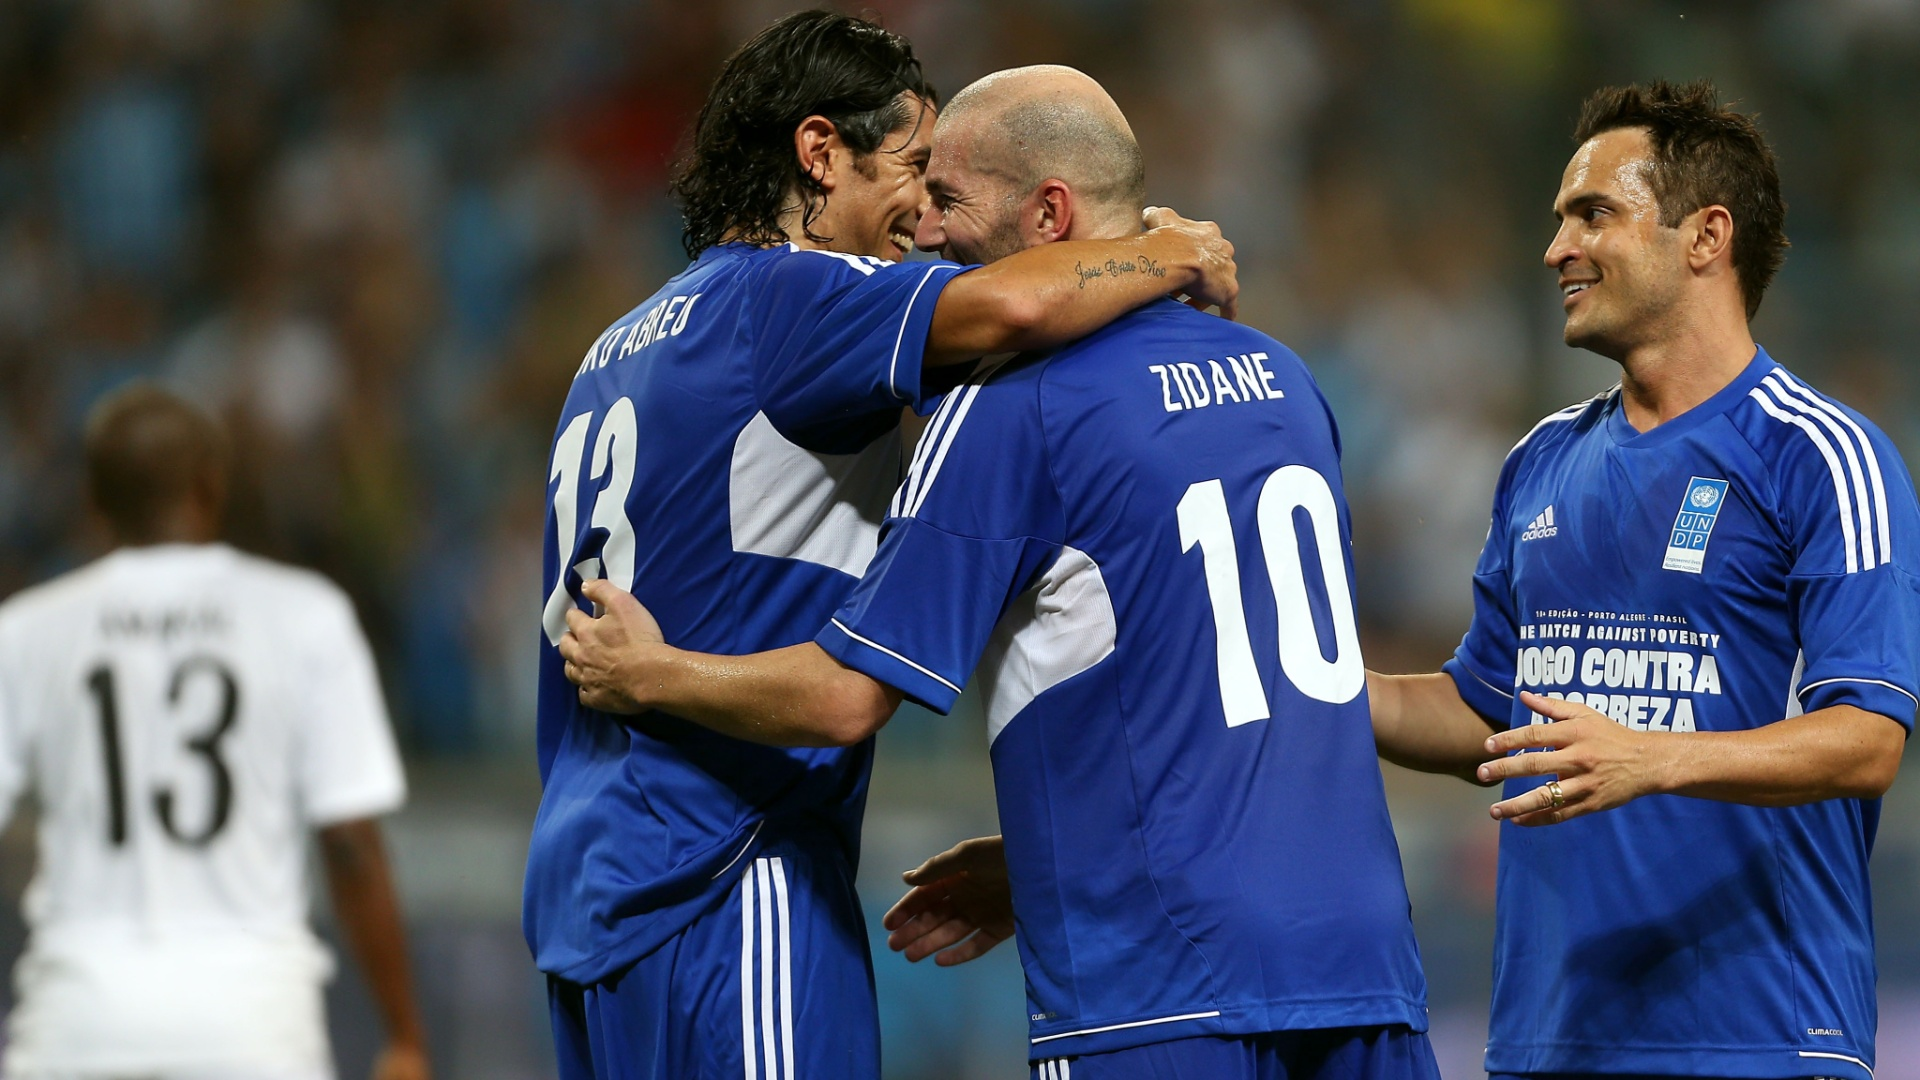 19.dez.2012 - Zidane comemora com Loco Abreu e Falco aps marcar no Jogo Contra a Pobreza